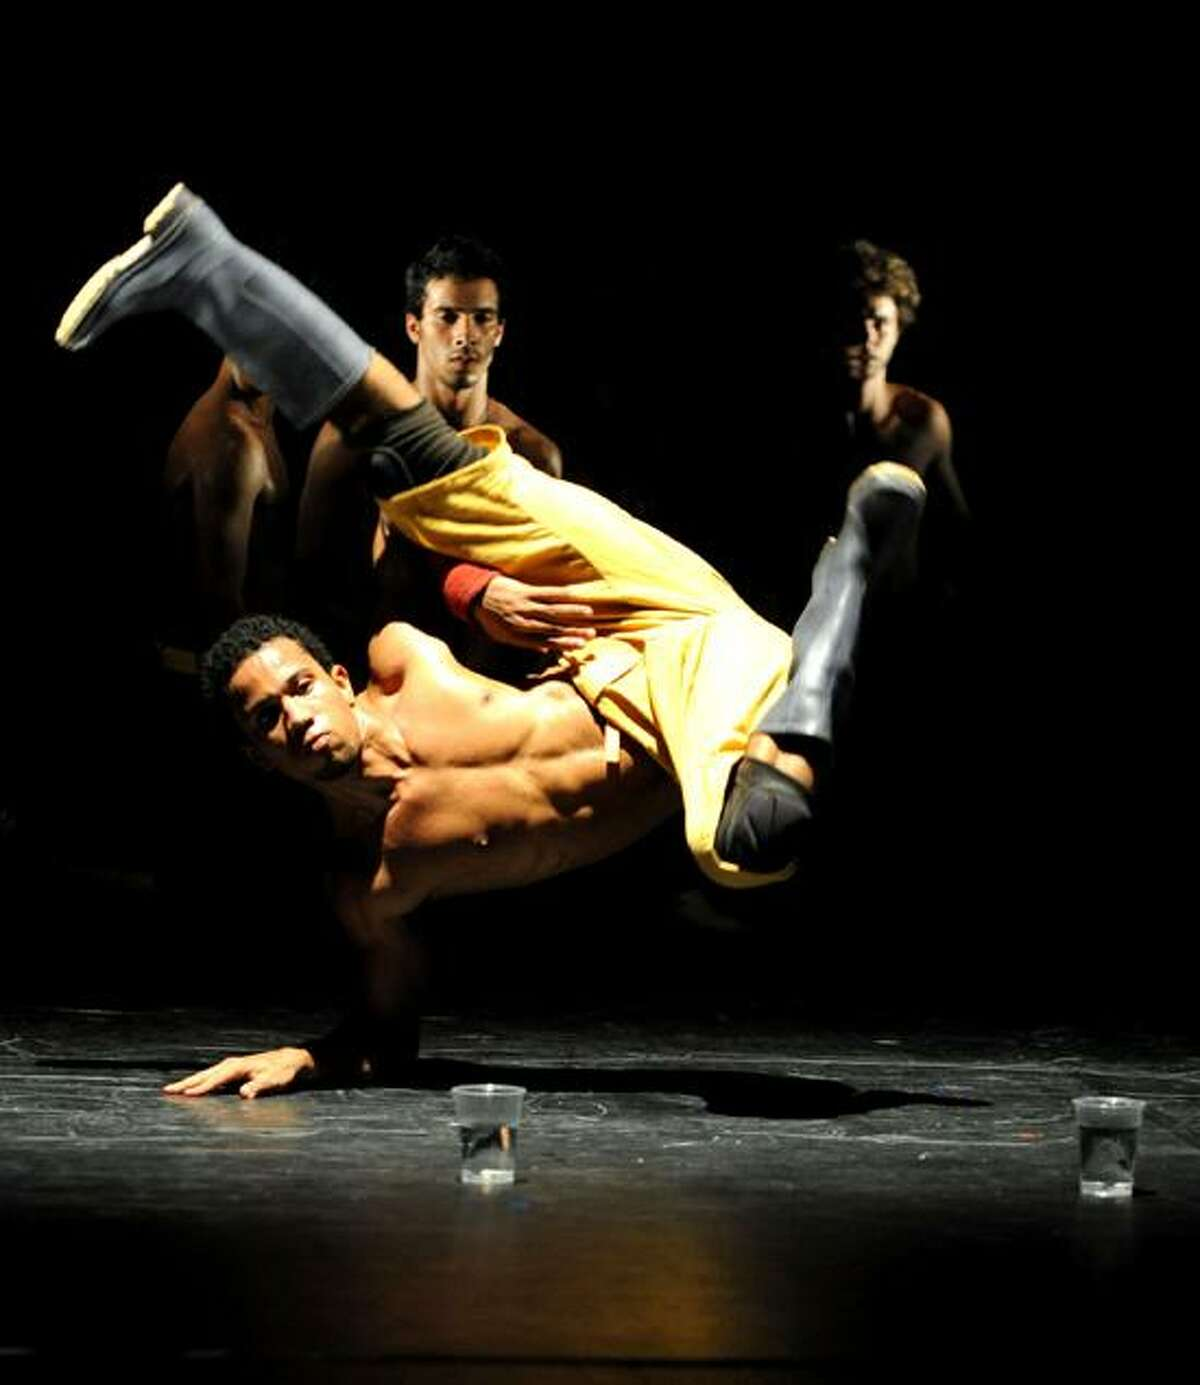 Daniela Cardon/Factory 18: The Brazilian dancers of Compagnie Kafig will perform two works.